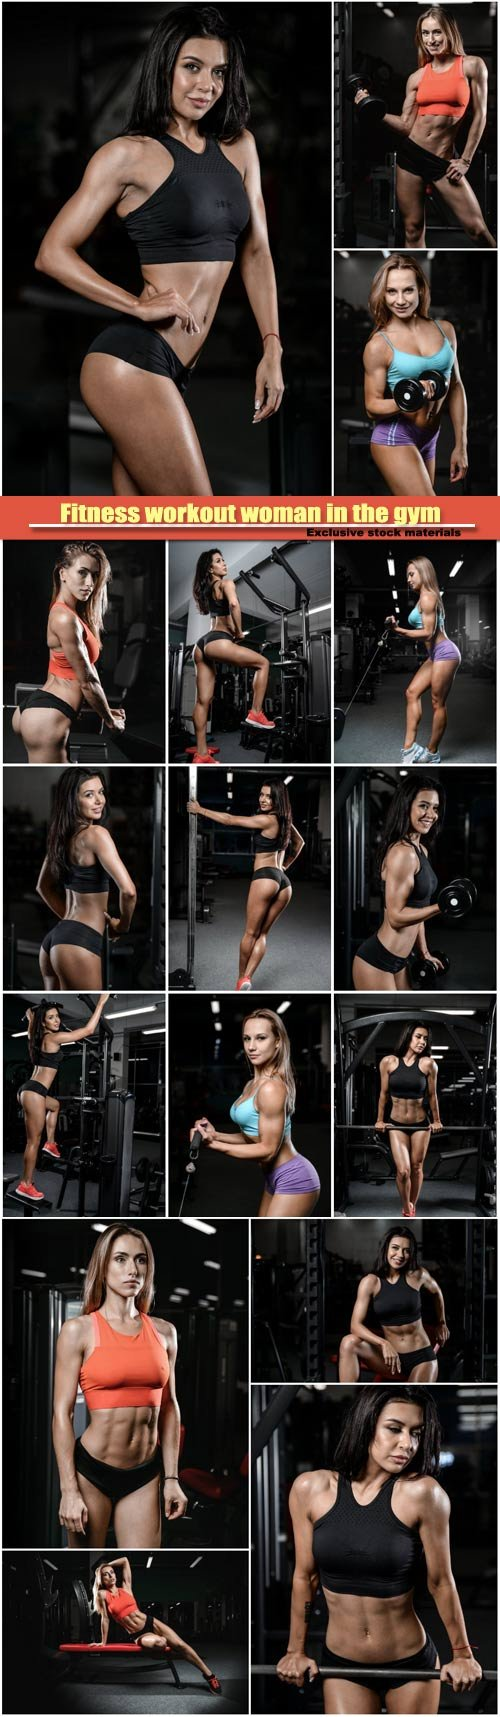 Fitness workout woman in the gym